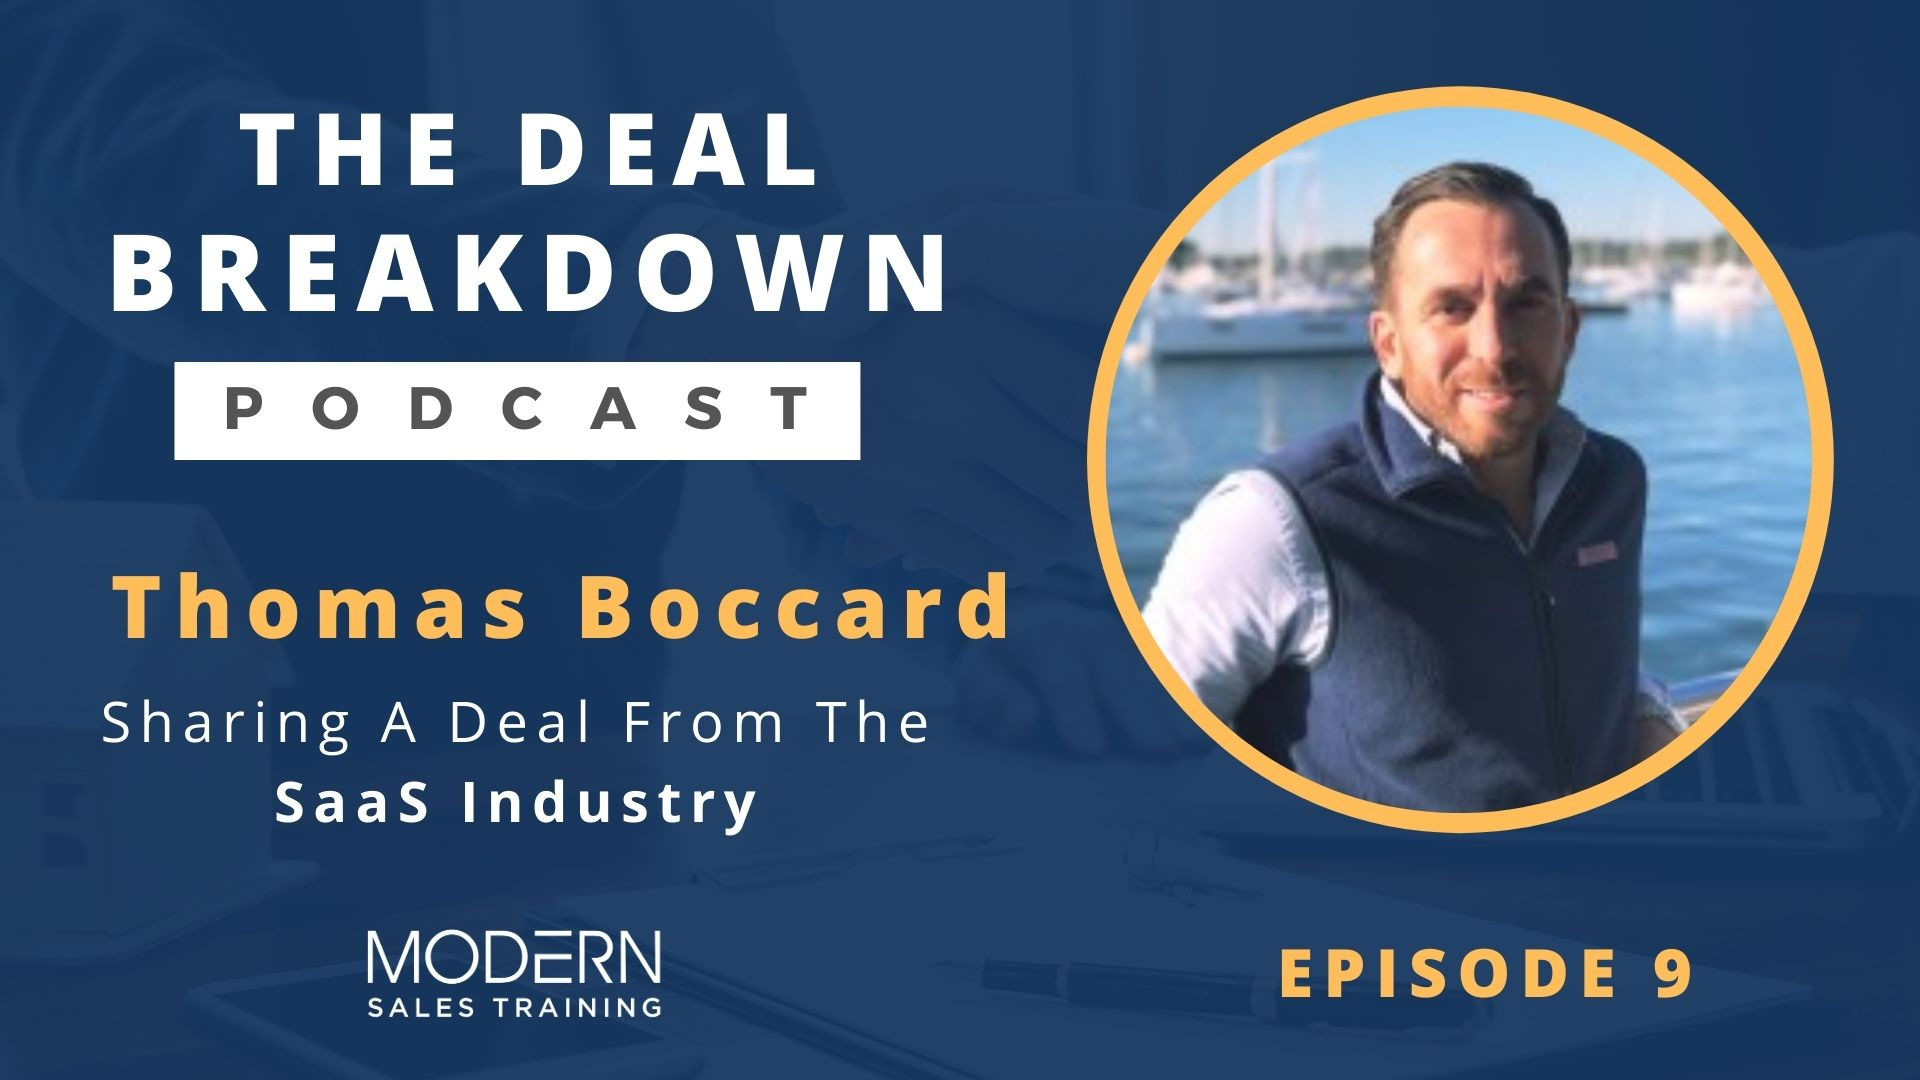 The-Deal-Breakdown-Podcast-Modern-Sales-Training-Thomas-Boccard